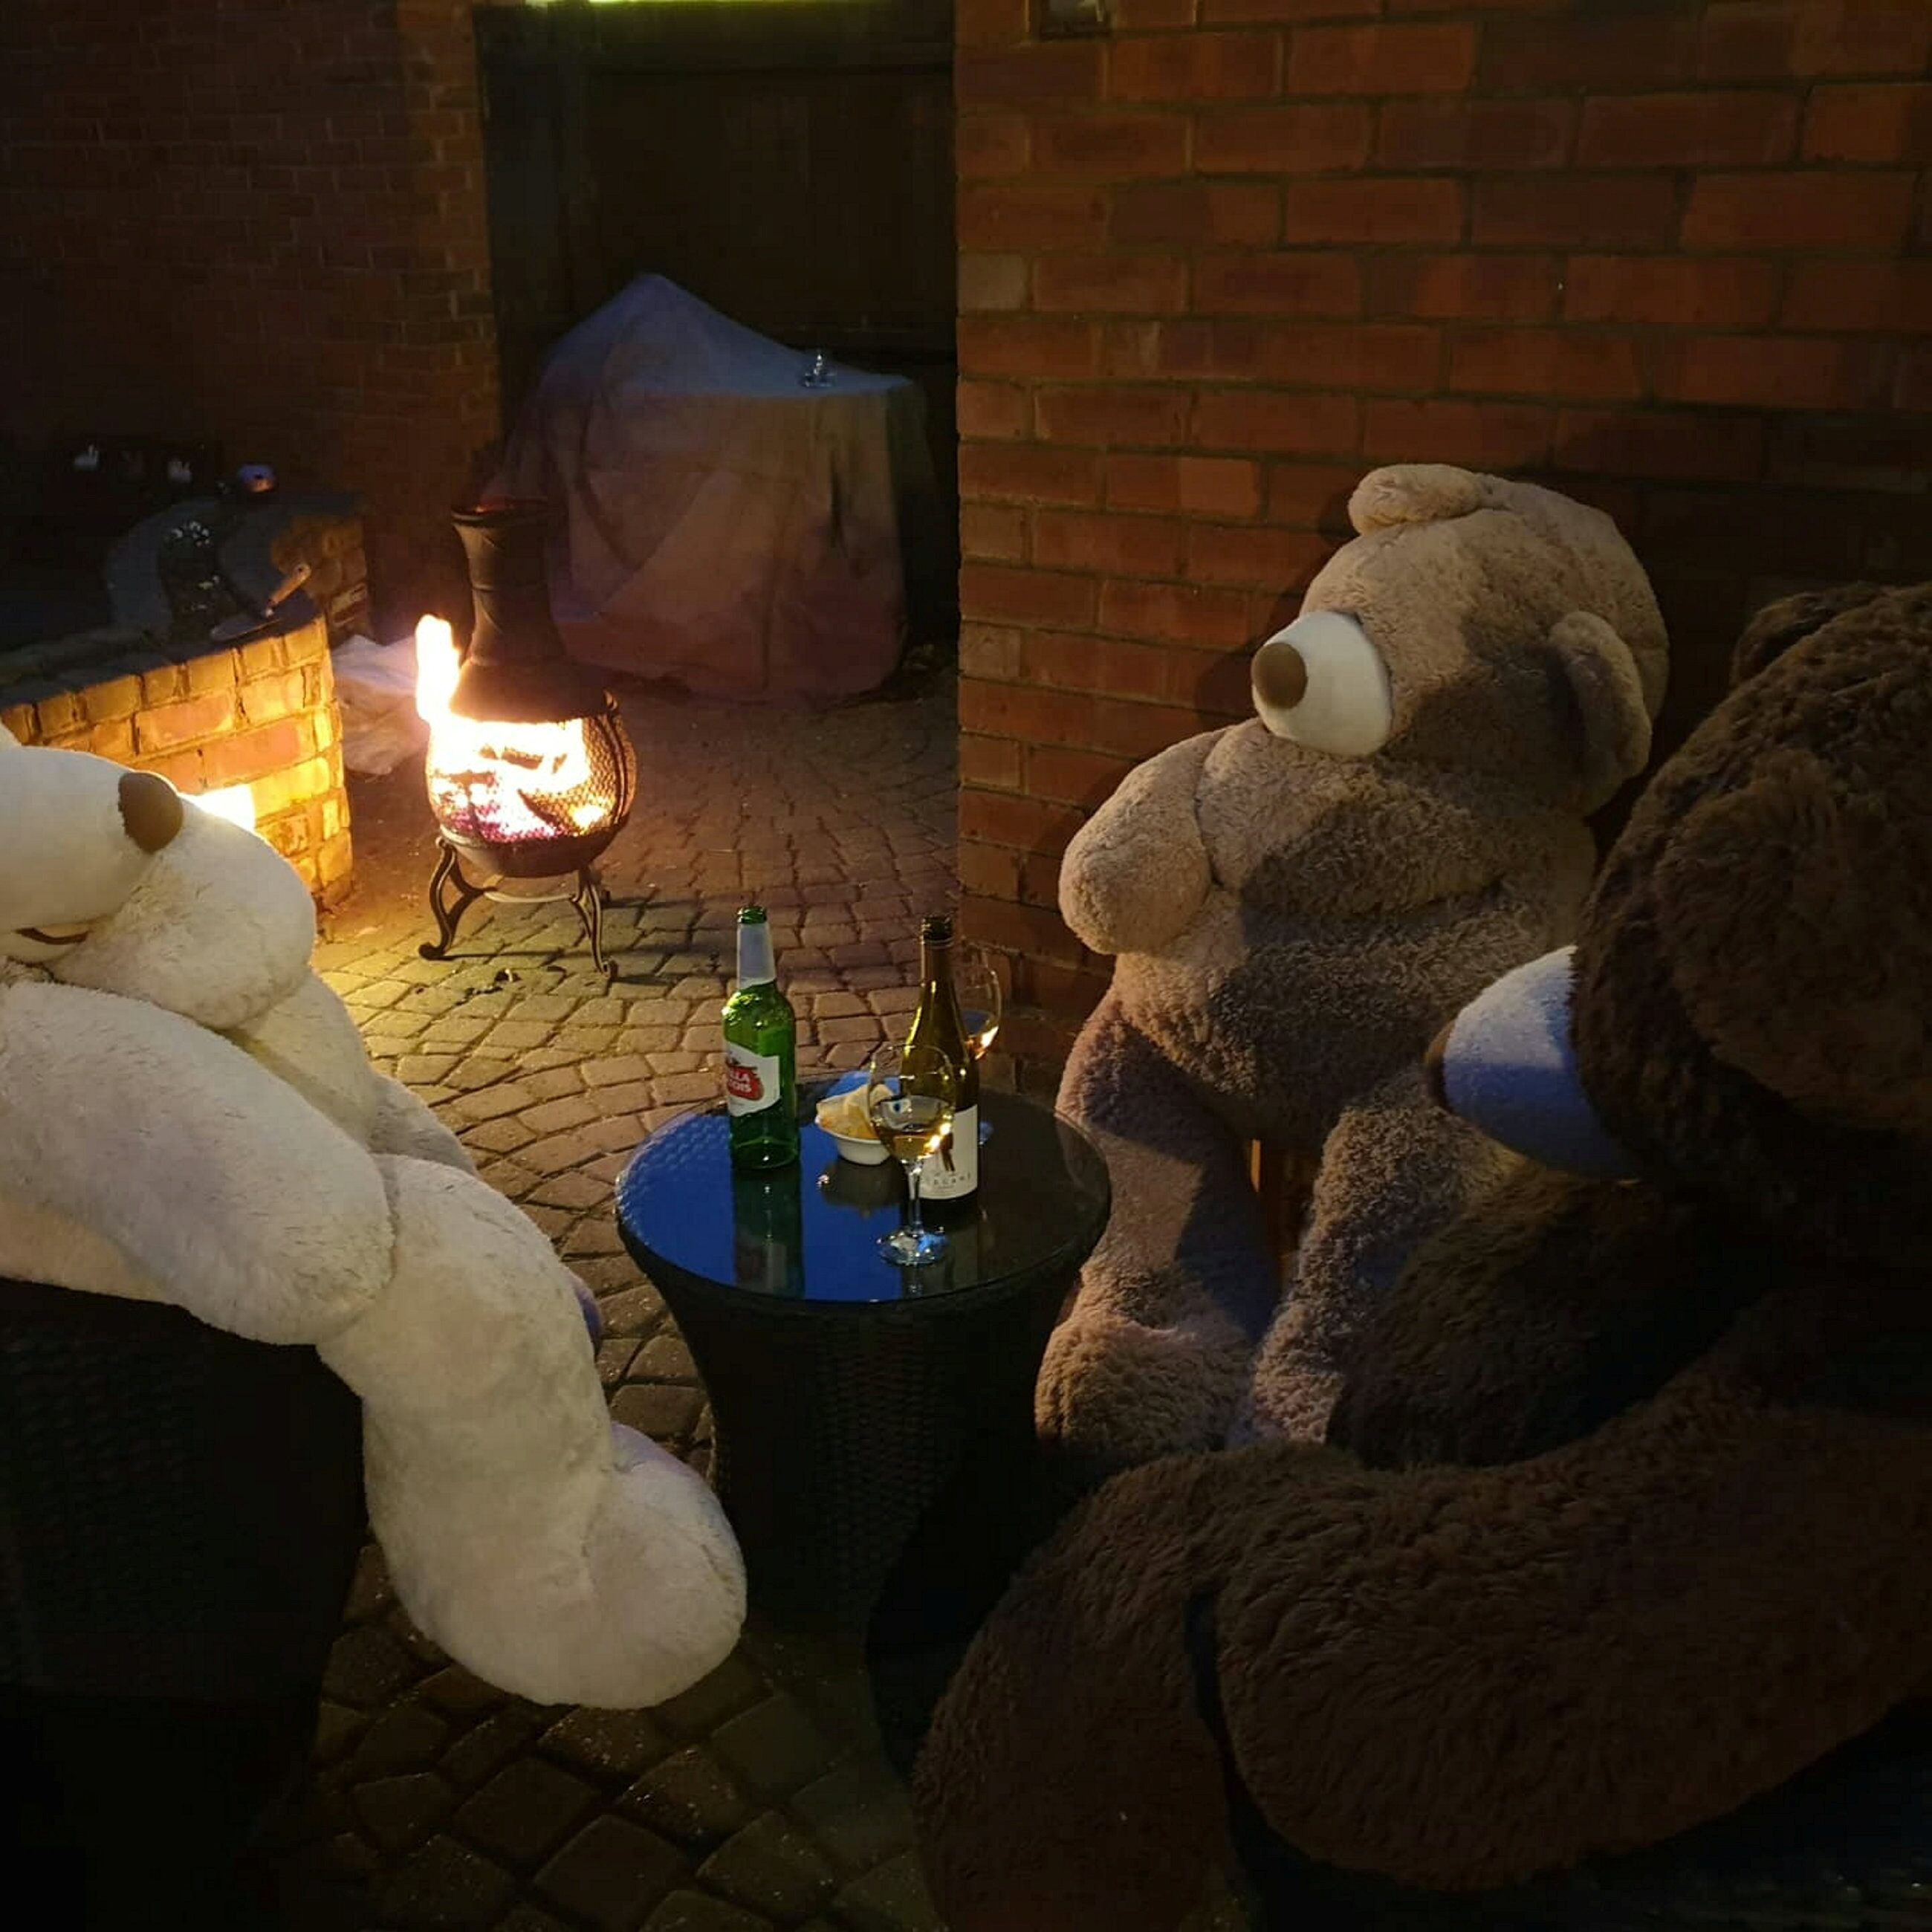 Gardening Coronavirus quarantine: Mom entertains household by posing giant teddy bears around home